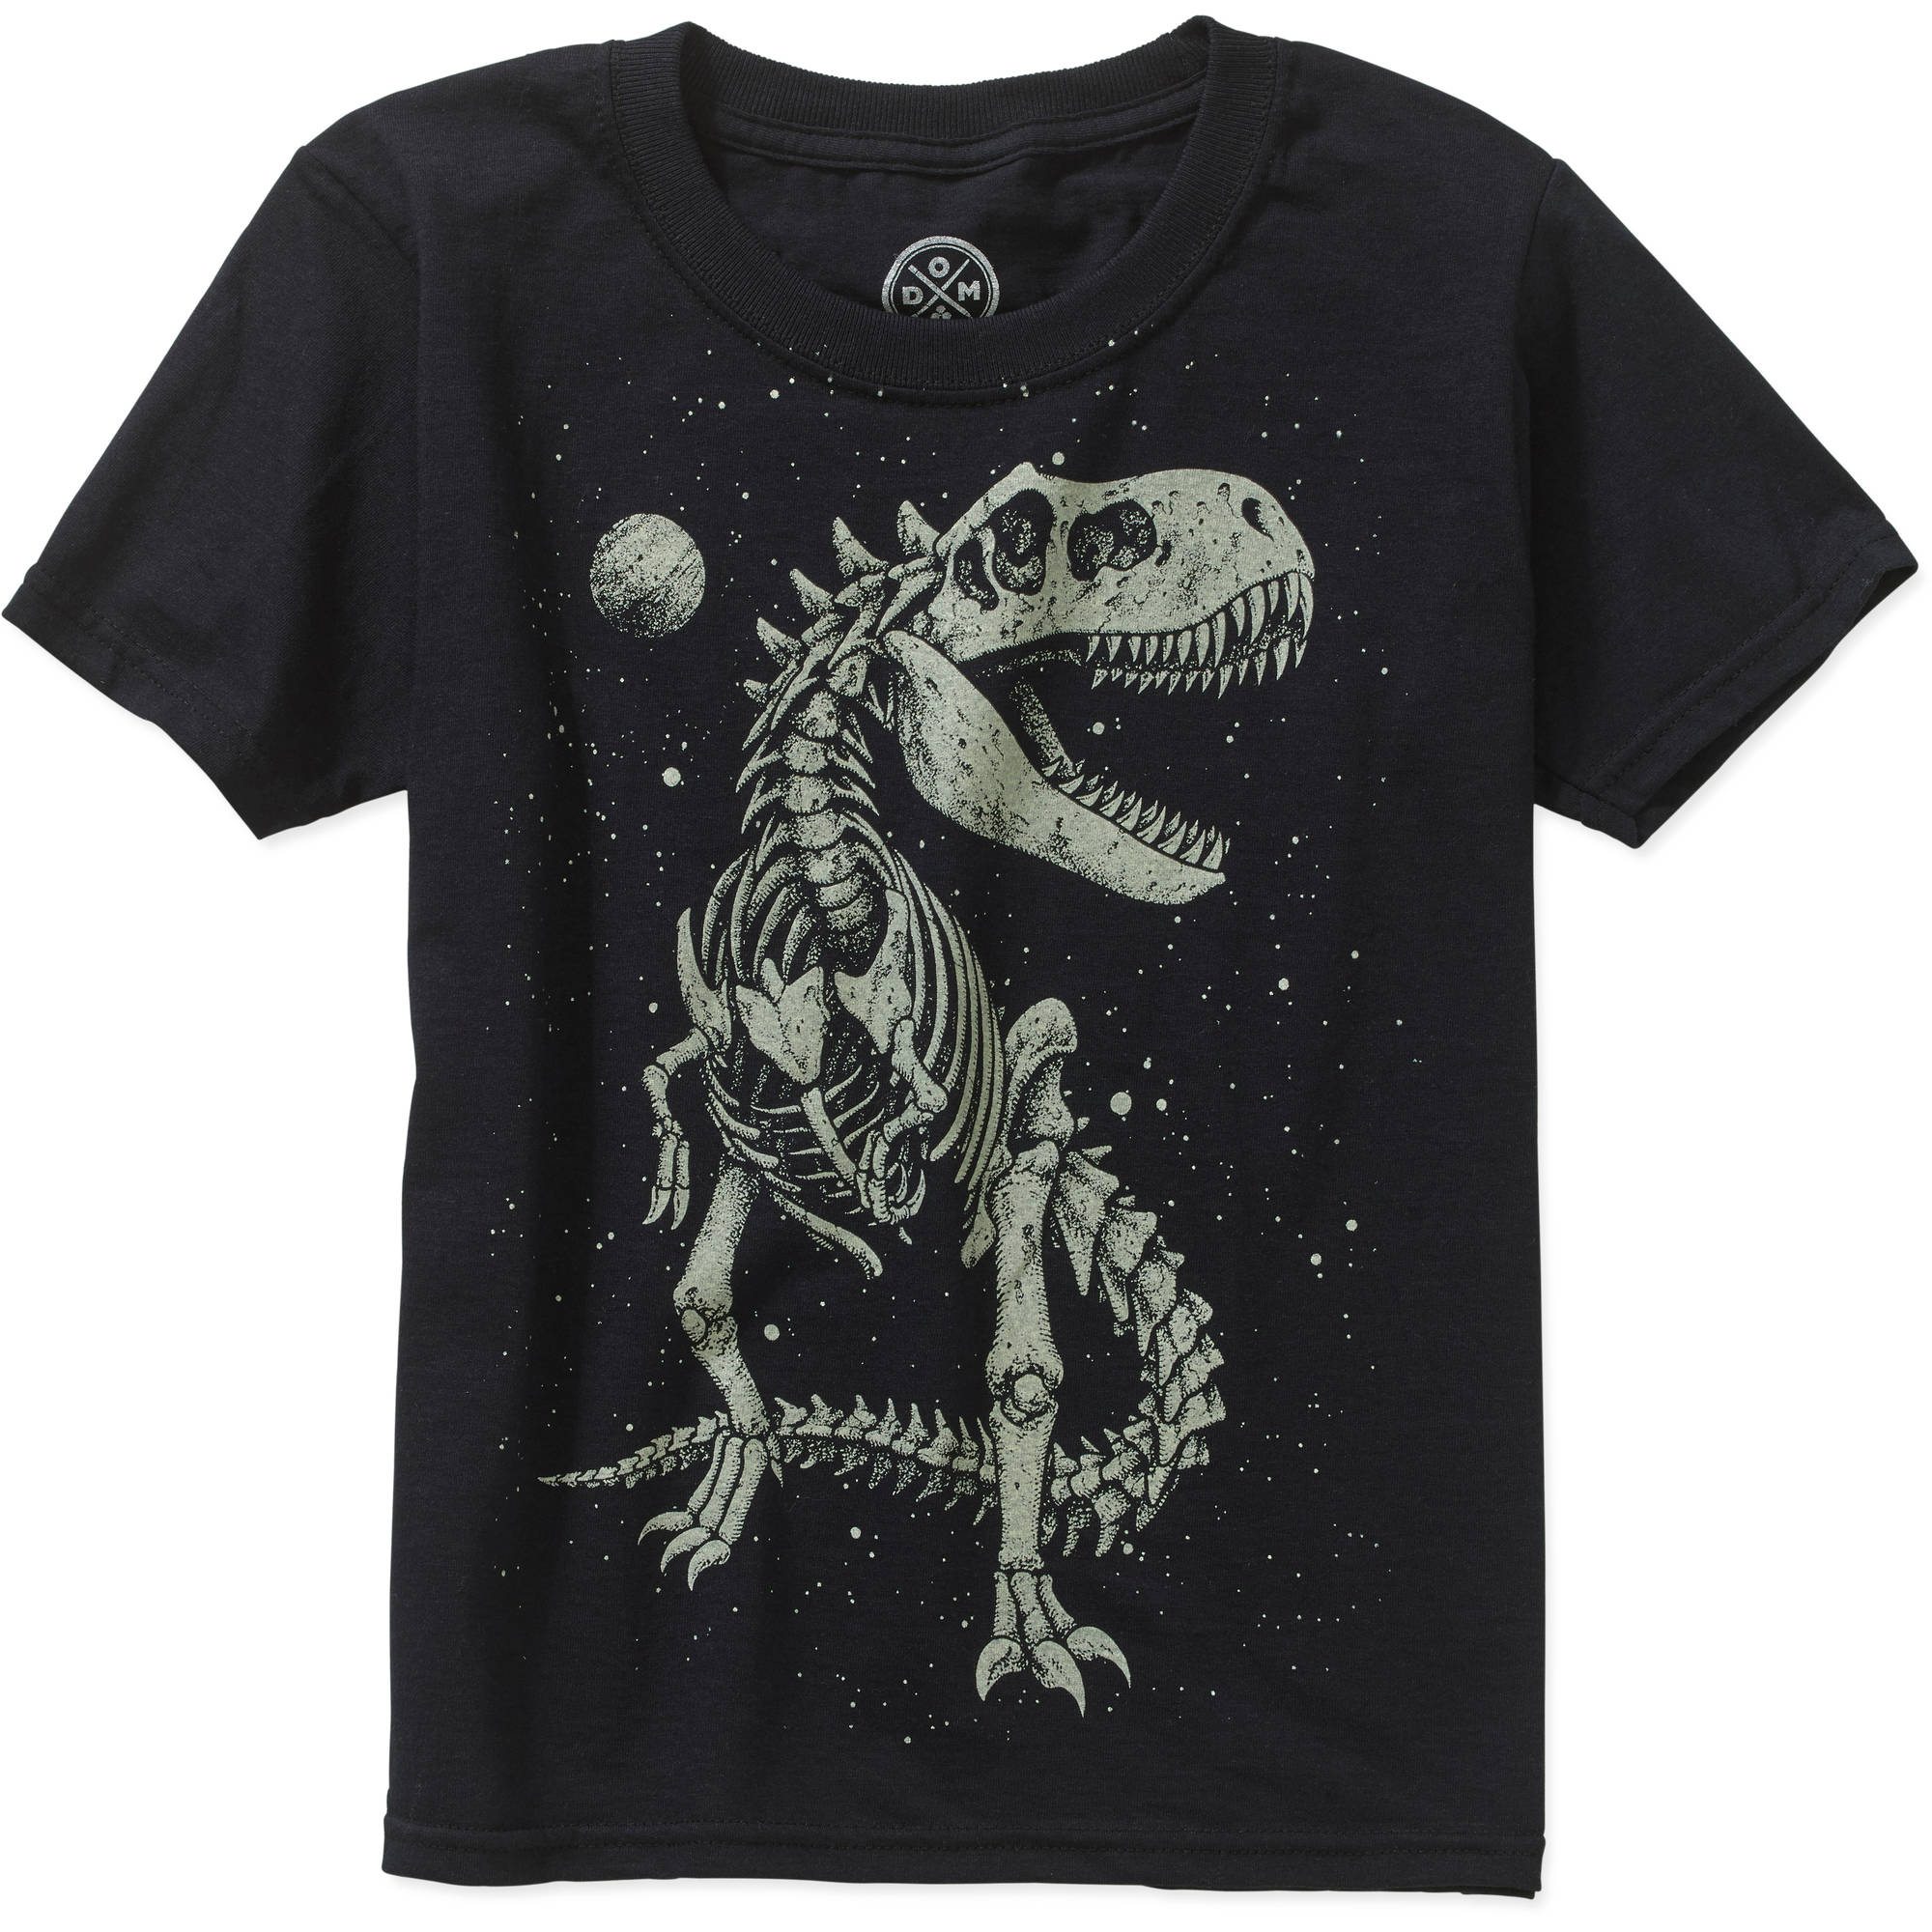 Boys' Glow in the Dark T-Rex Skeleton Short Sleeve Graphic Tee